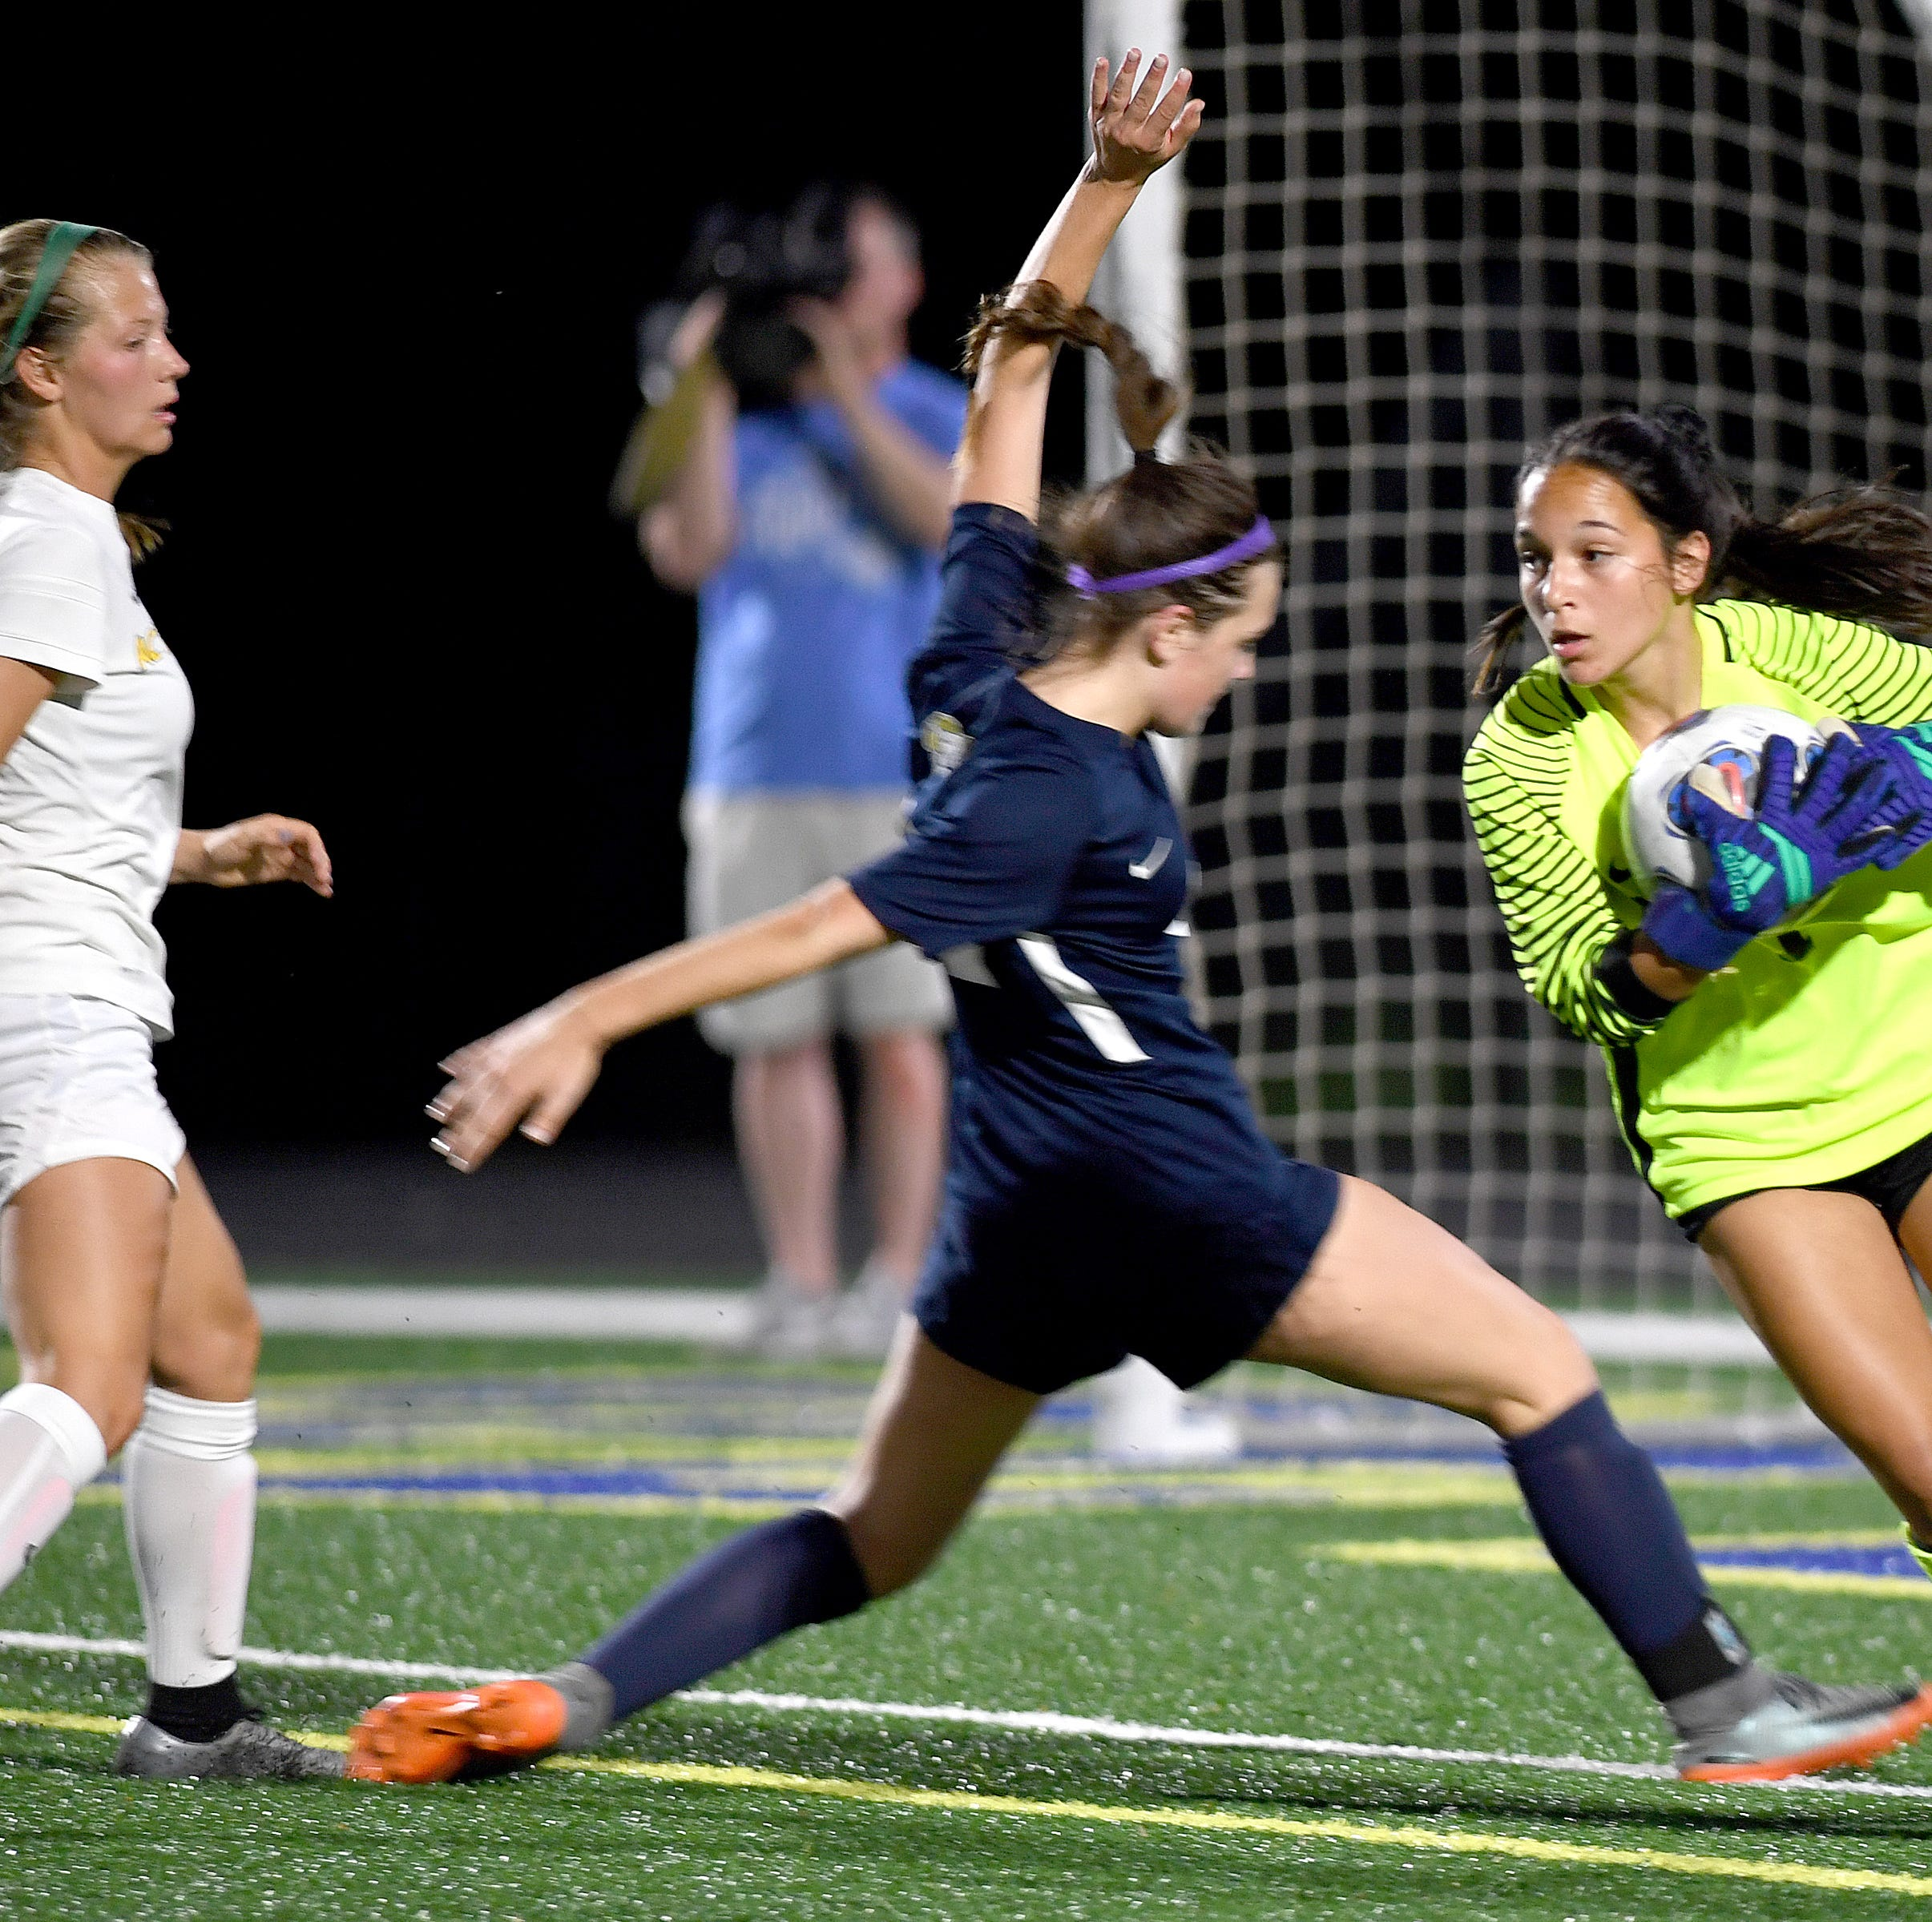 WNC high school soccer: First round playoff pairings